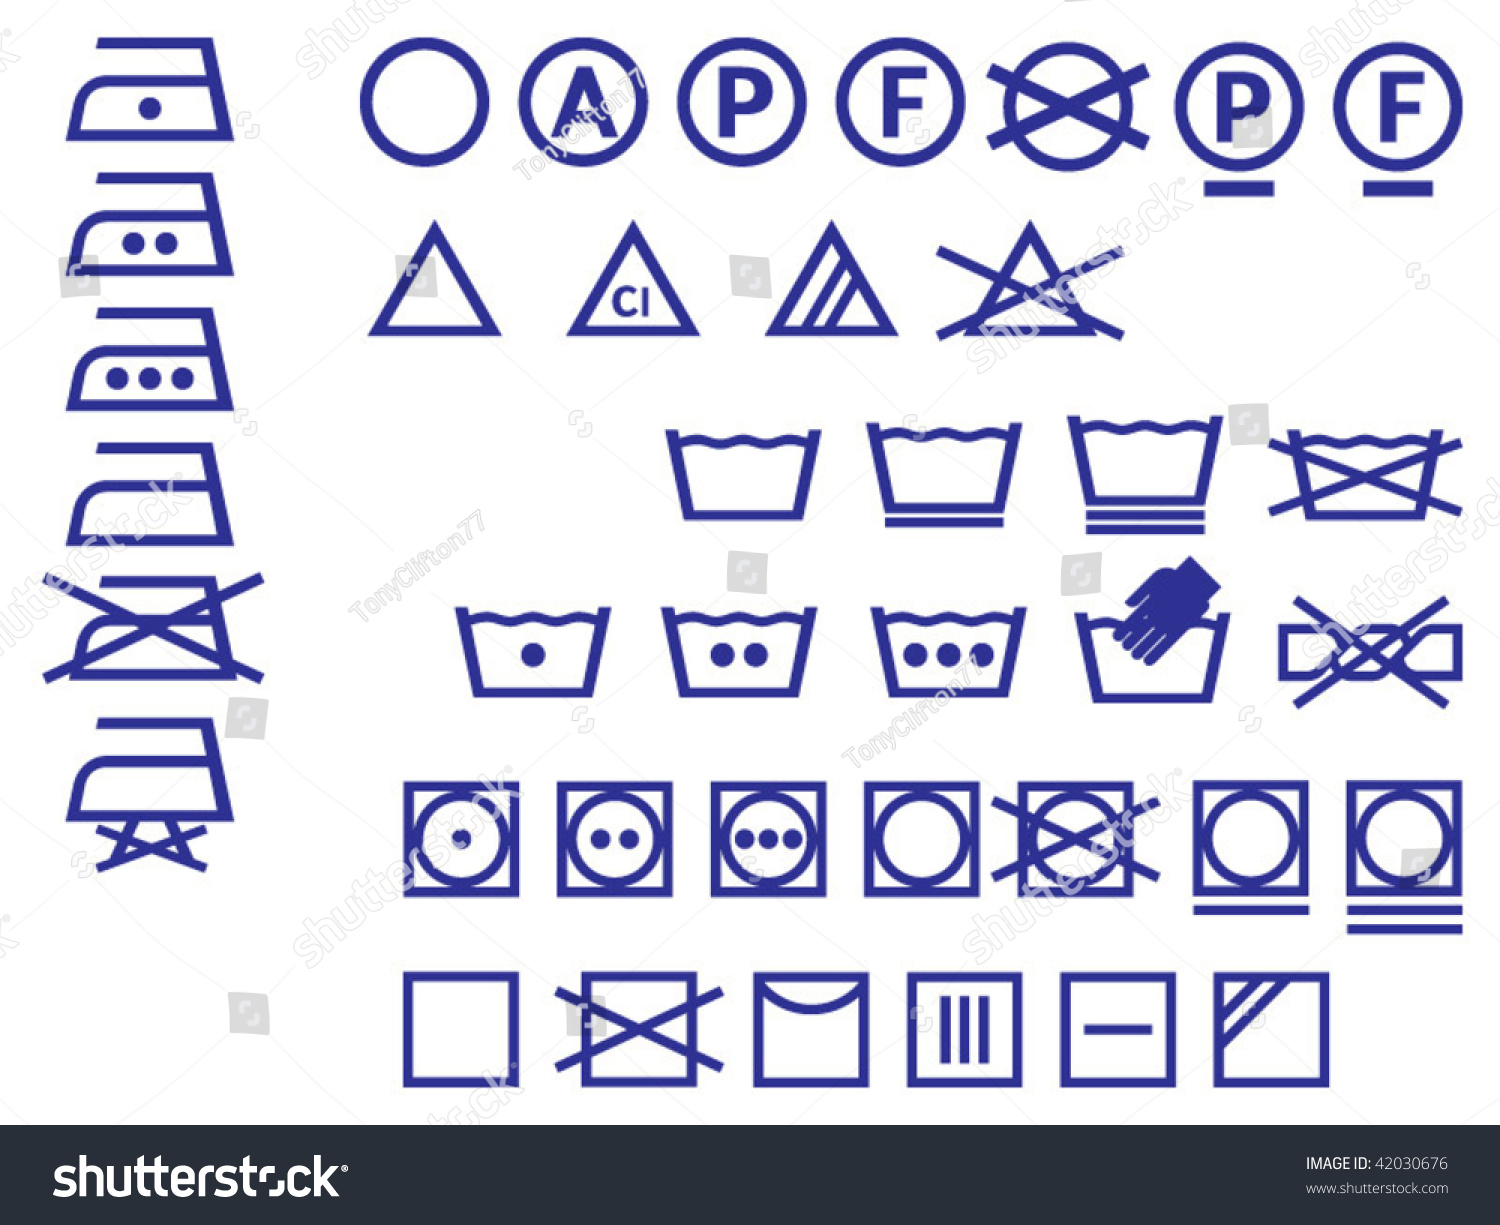 Vector icon set washing symbols stock vector 42030676 shutterstock vector icon set of washing symbols biocorpaavc Image collections